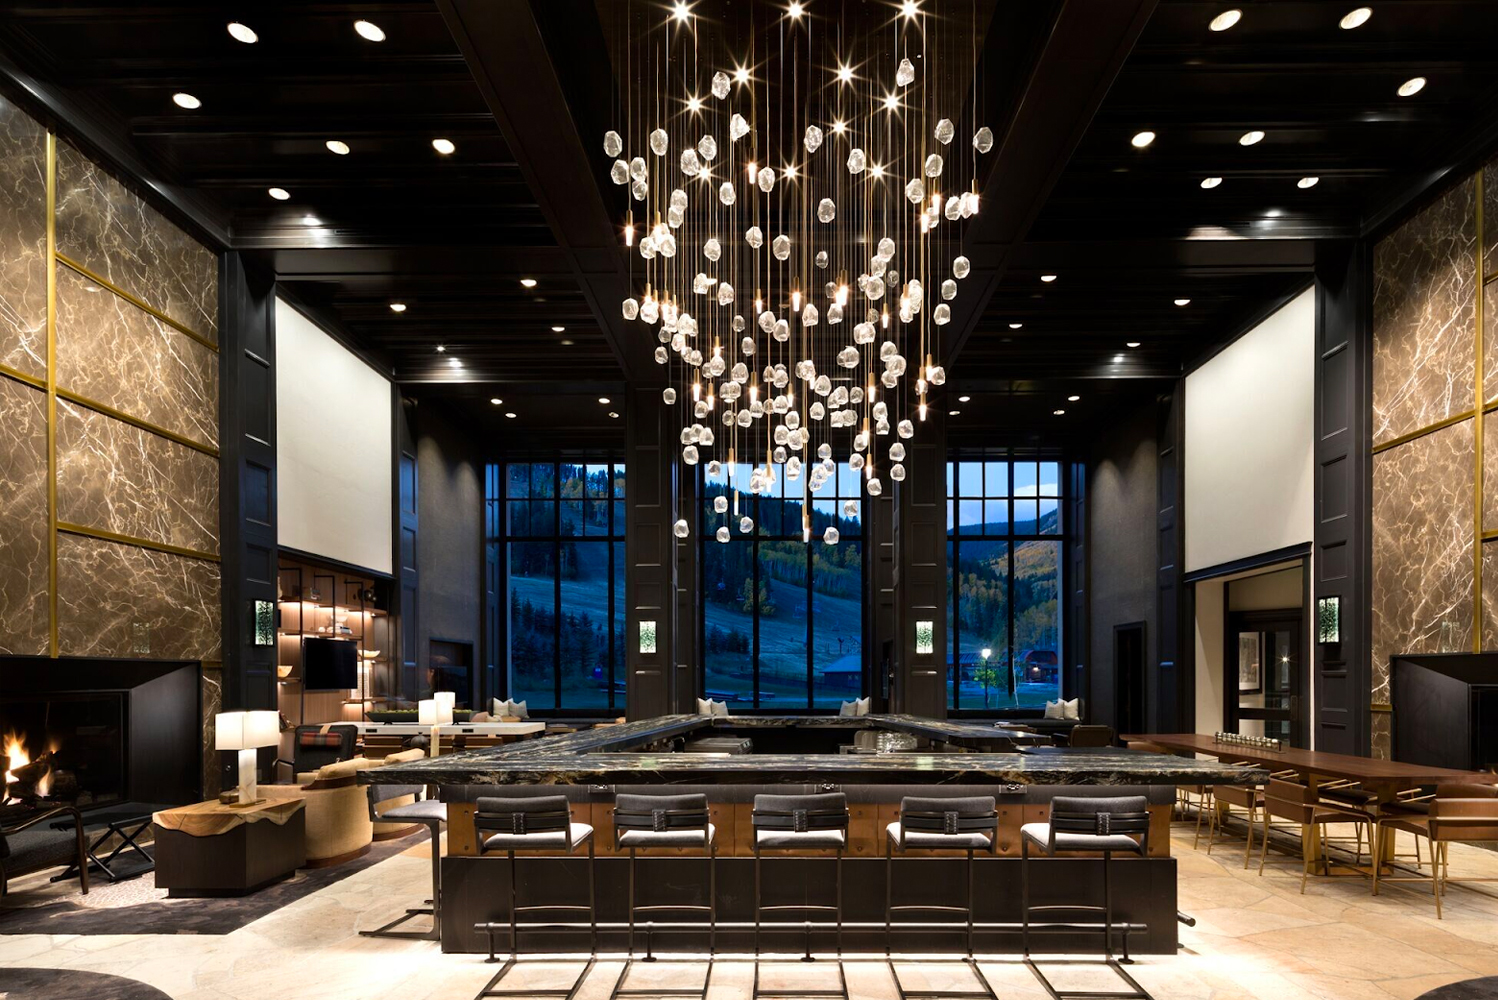 Premier Project Management was tasked with interior design, project management, procurement and food service equipment design for the reception, lobby, bar and market areas.